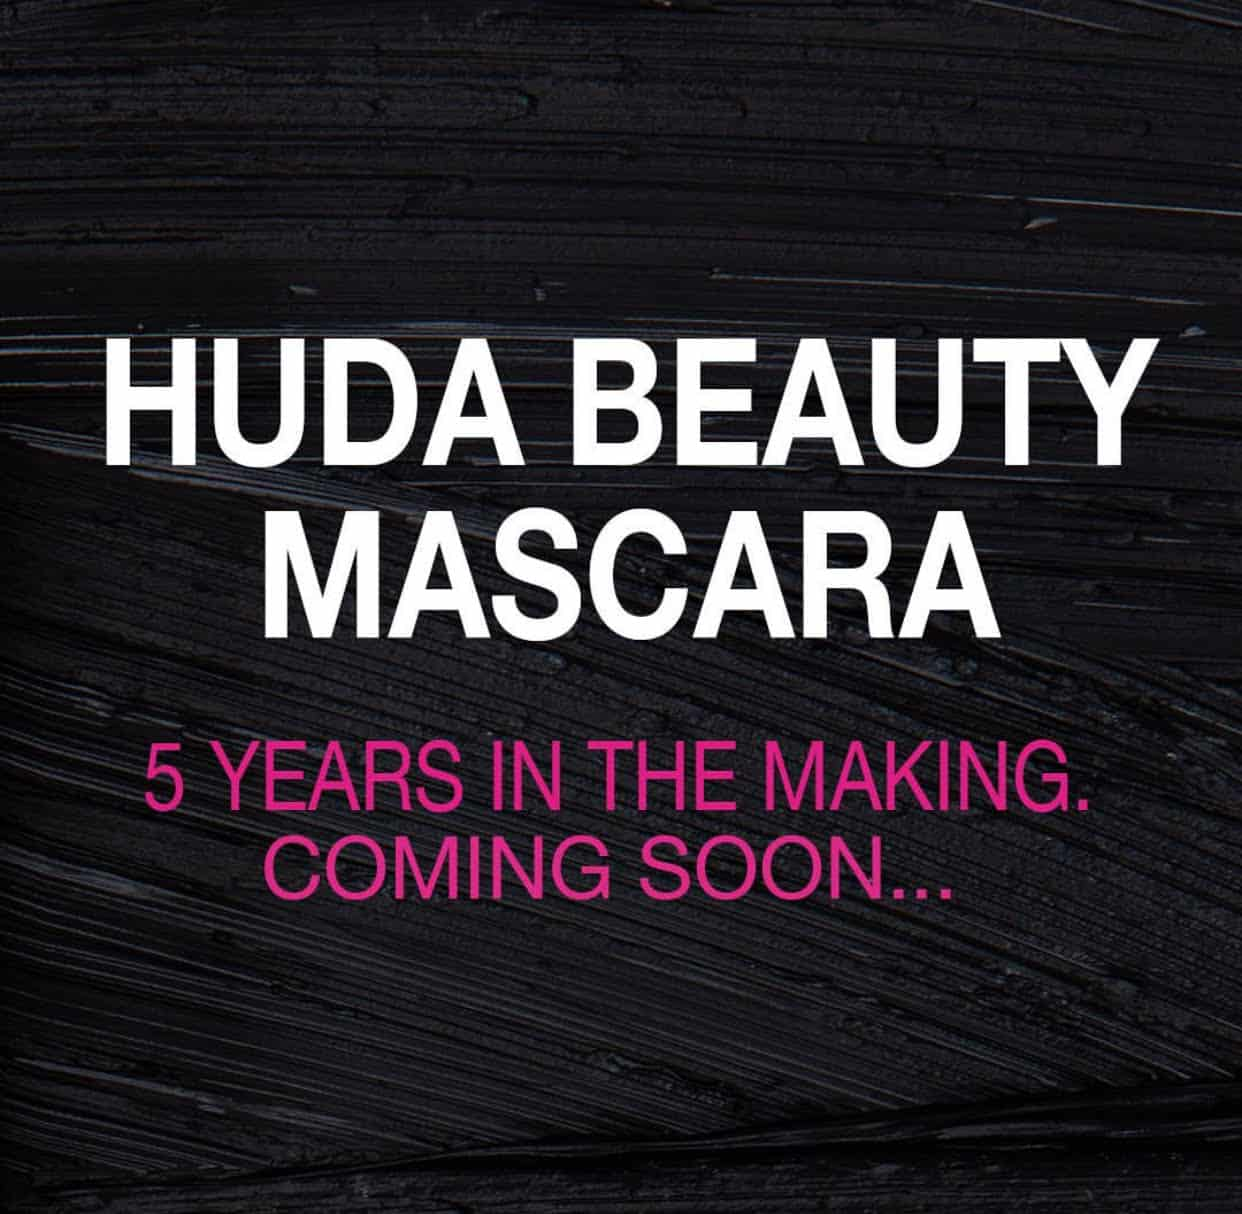 Huda Beauty Mascara